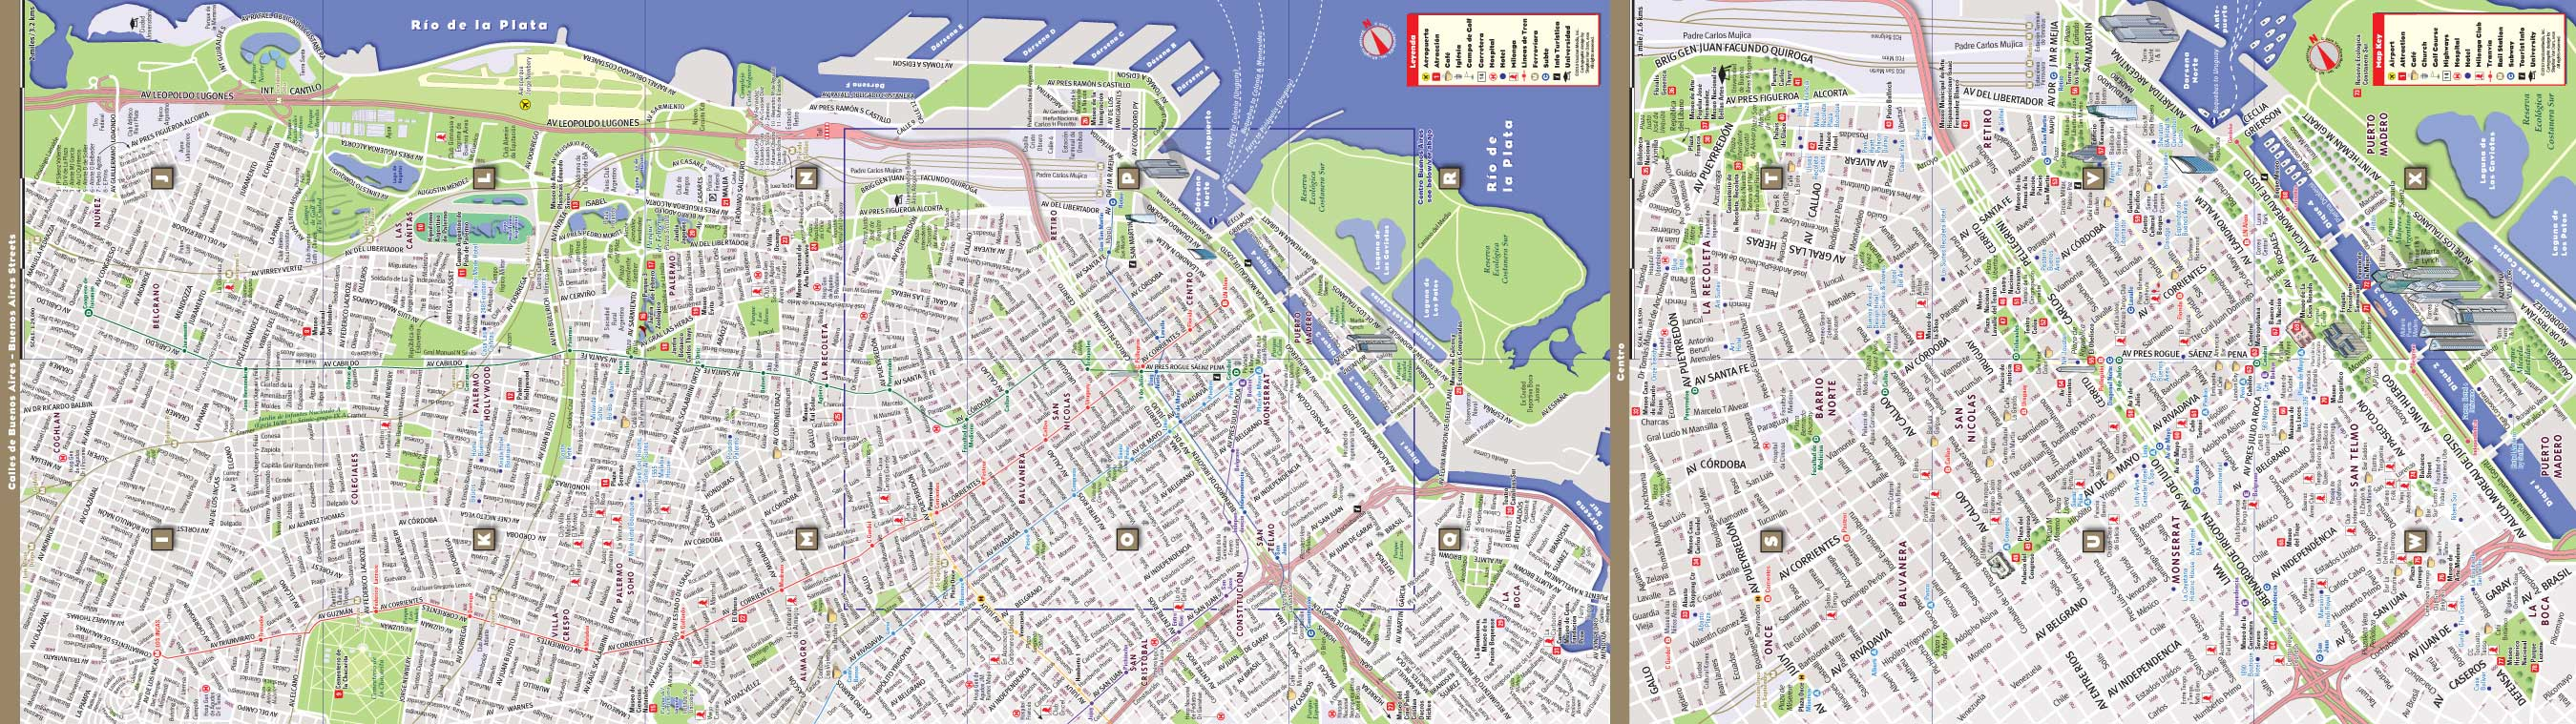 Buenos Aires Map by VanDam Buenos Aires StreetSmart Map City